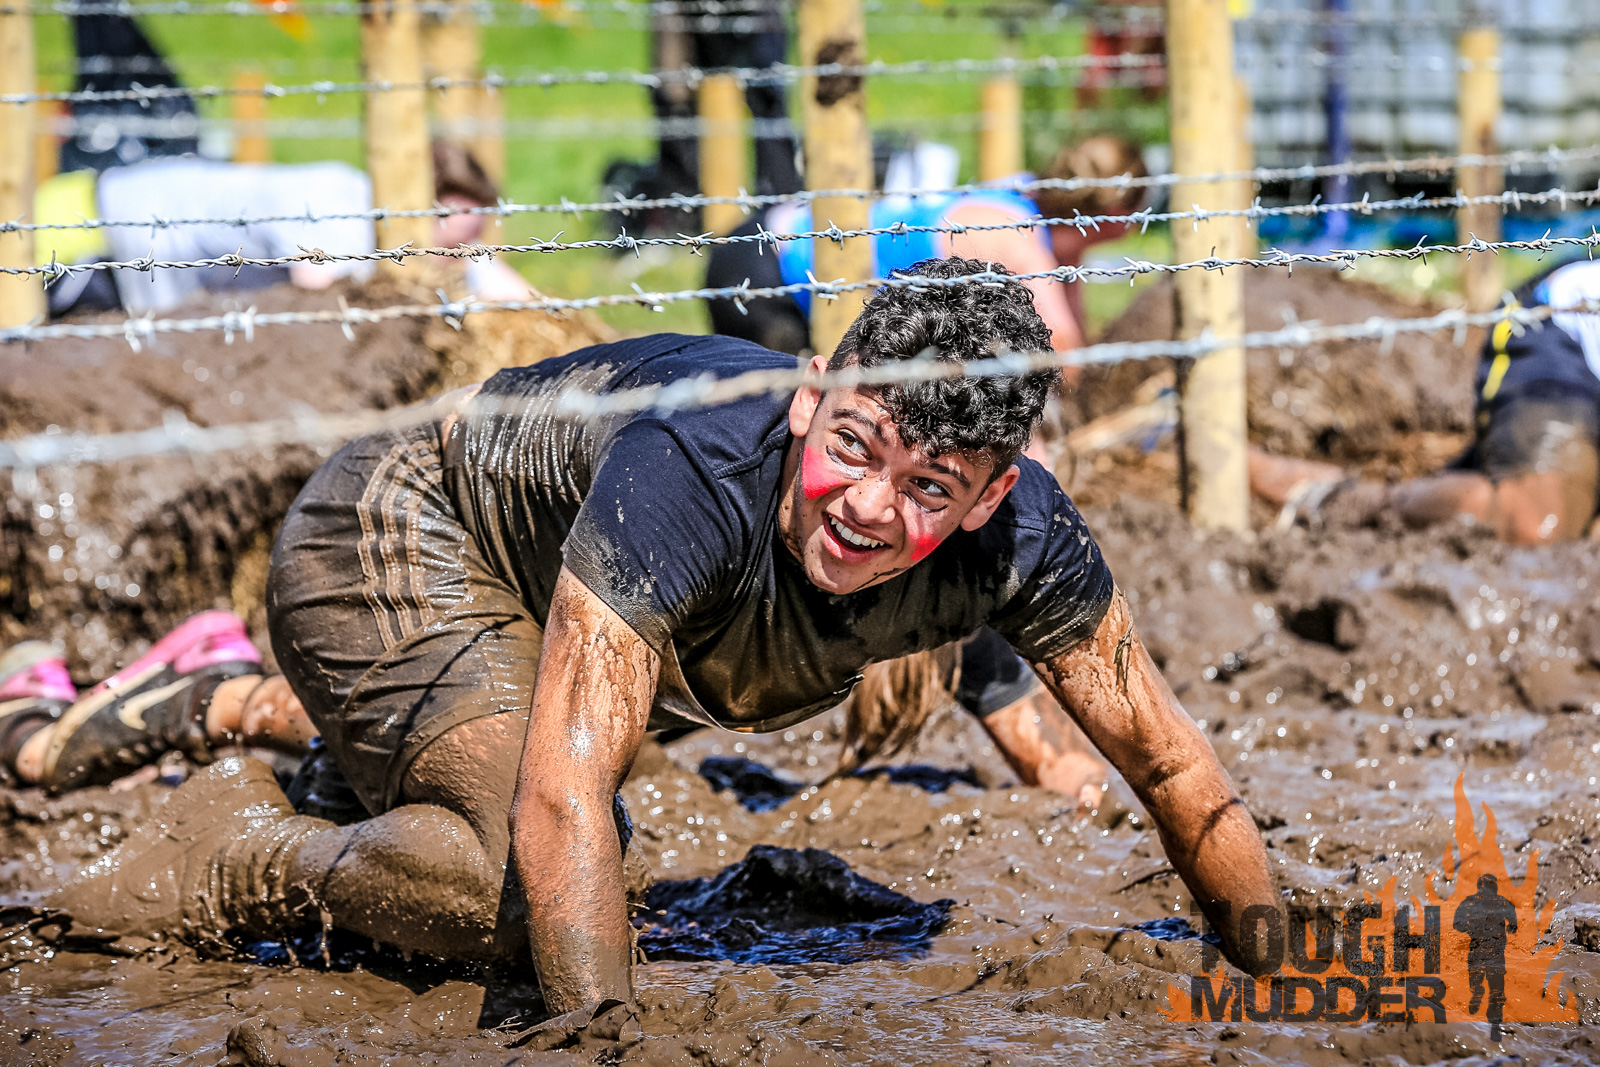 Tough-mudder-2017-sports-photography-edinburgh-glasgow-13.jpg